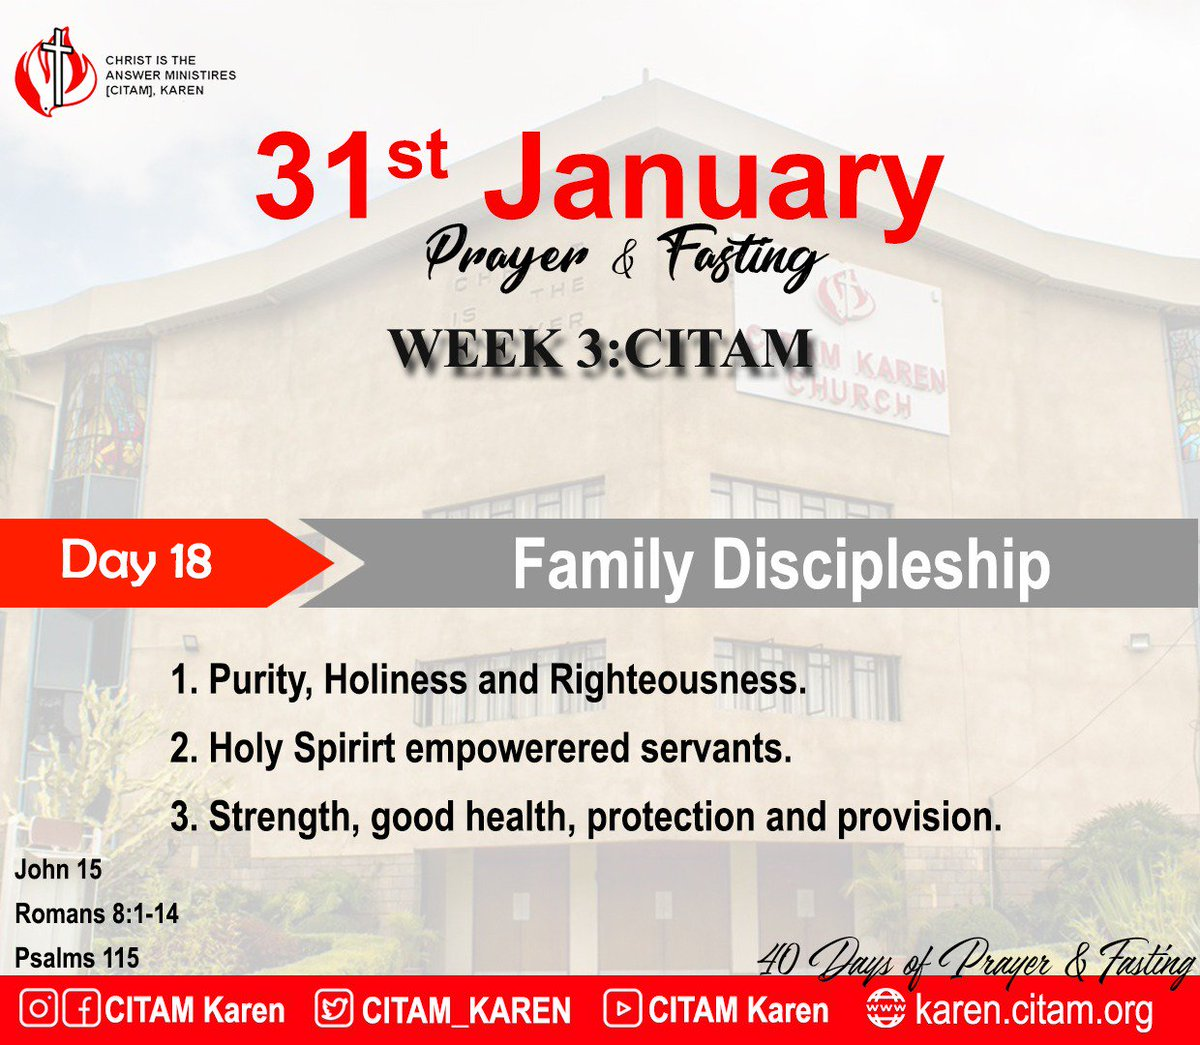 Day 18 of 40 days of prayer and fasting: Pray for family